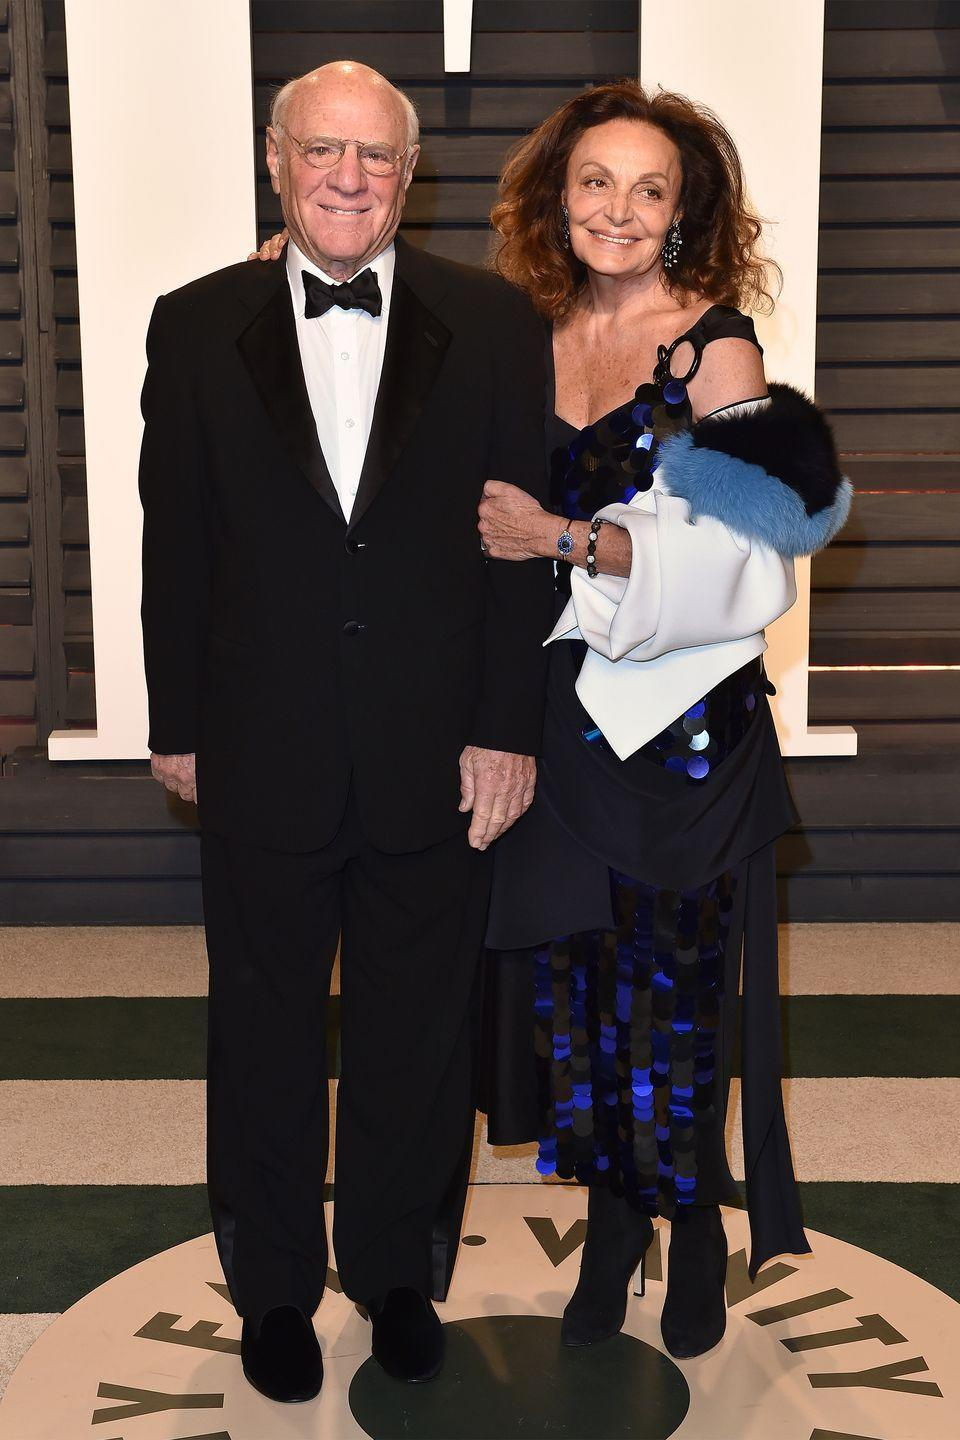 "<p>Legendary fashion designer Diane von Furstenberg and husband Barry Diller, who is the creator of Fox Broadcasting Company, have a been together for nearly four decades.</p><p>""This man has been my lover, my friend, and he's now my husband, she explained to the<em><a href=""https://www.nytimes.com/2013/06/30/magazine/how-diane-von-furstenberg-is-like-a-cowboy.html?ref=style"" rel=""nofollow noopener"" target=""_blank"" data-ylk=""slk:New York Times Magazine"" class=""link rapid-noclick-resp""> New York Times Magazine</a></em> in 2013. ""I have been with him for 35 years. At times we were separated, at times we were only friends, at times we were lovers, at times we're husband and wife, that's our life."" </p>"